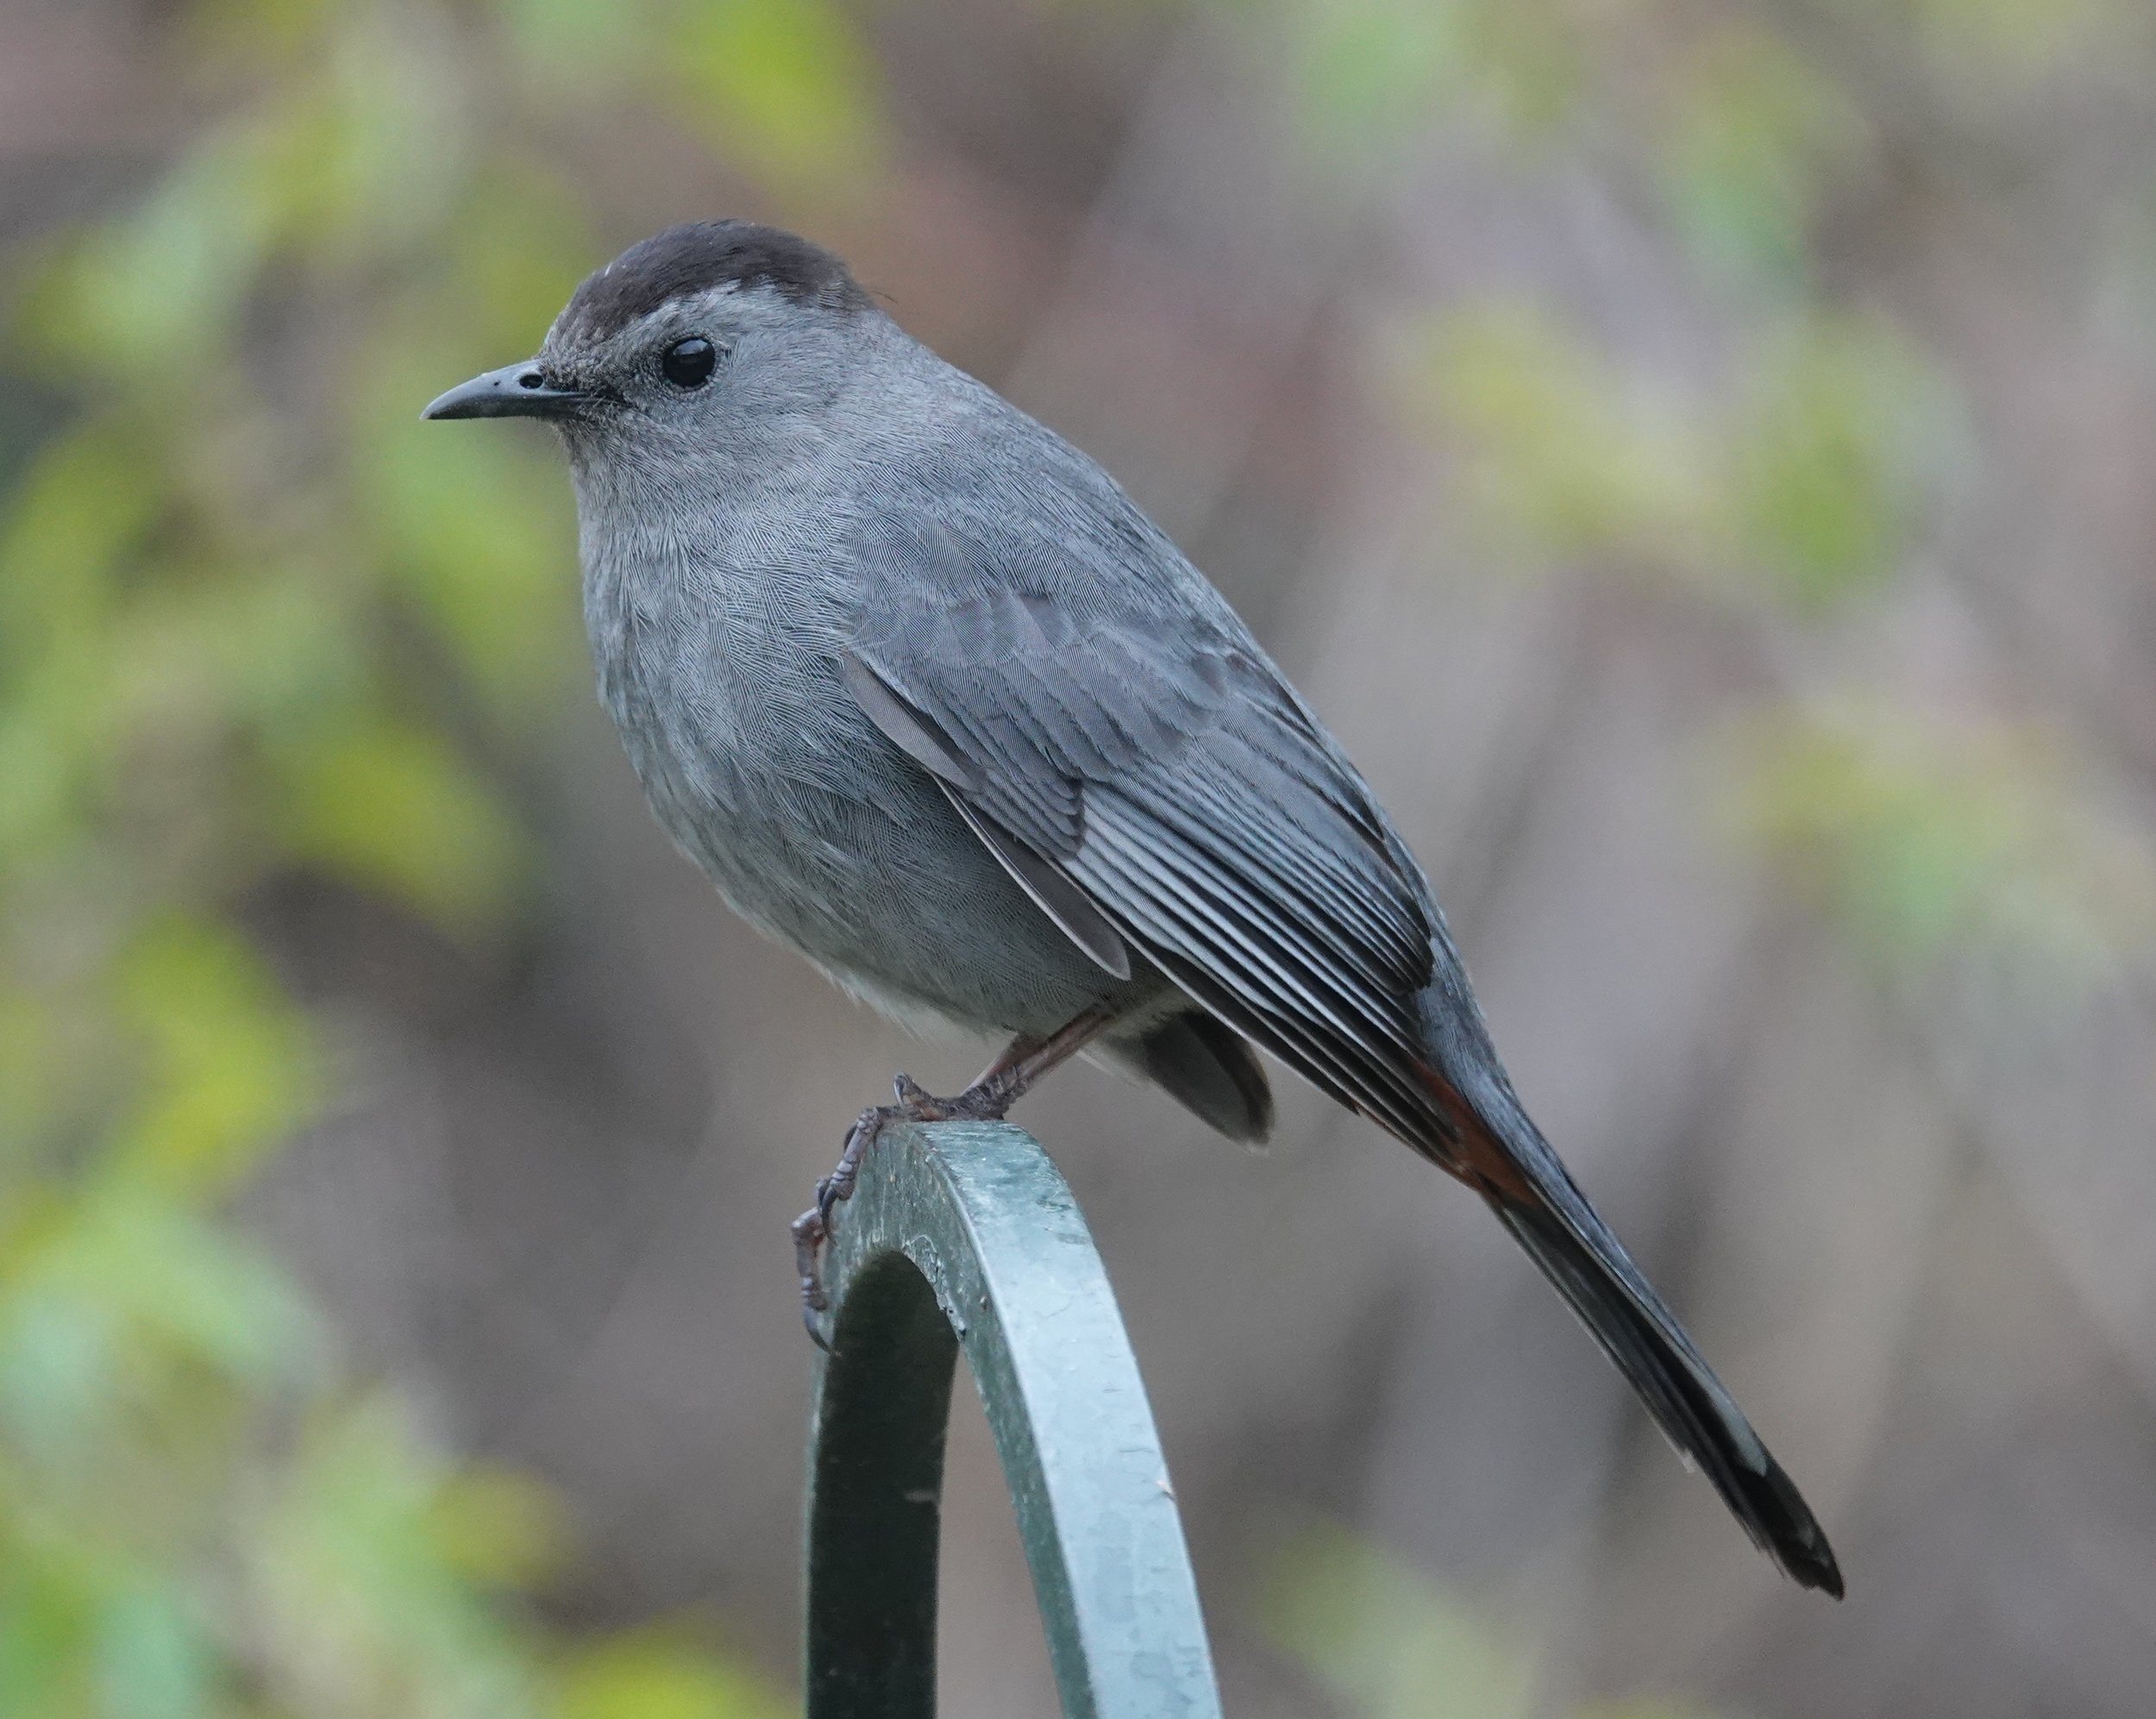 There is a hint of the rufous undertail coverts on this gray catbird.